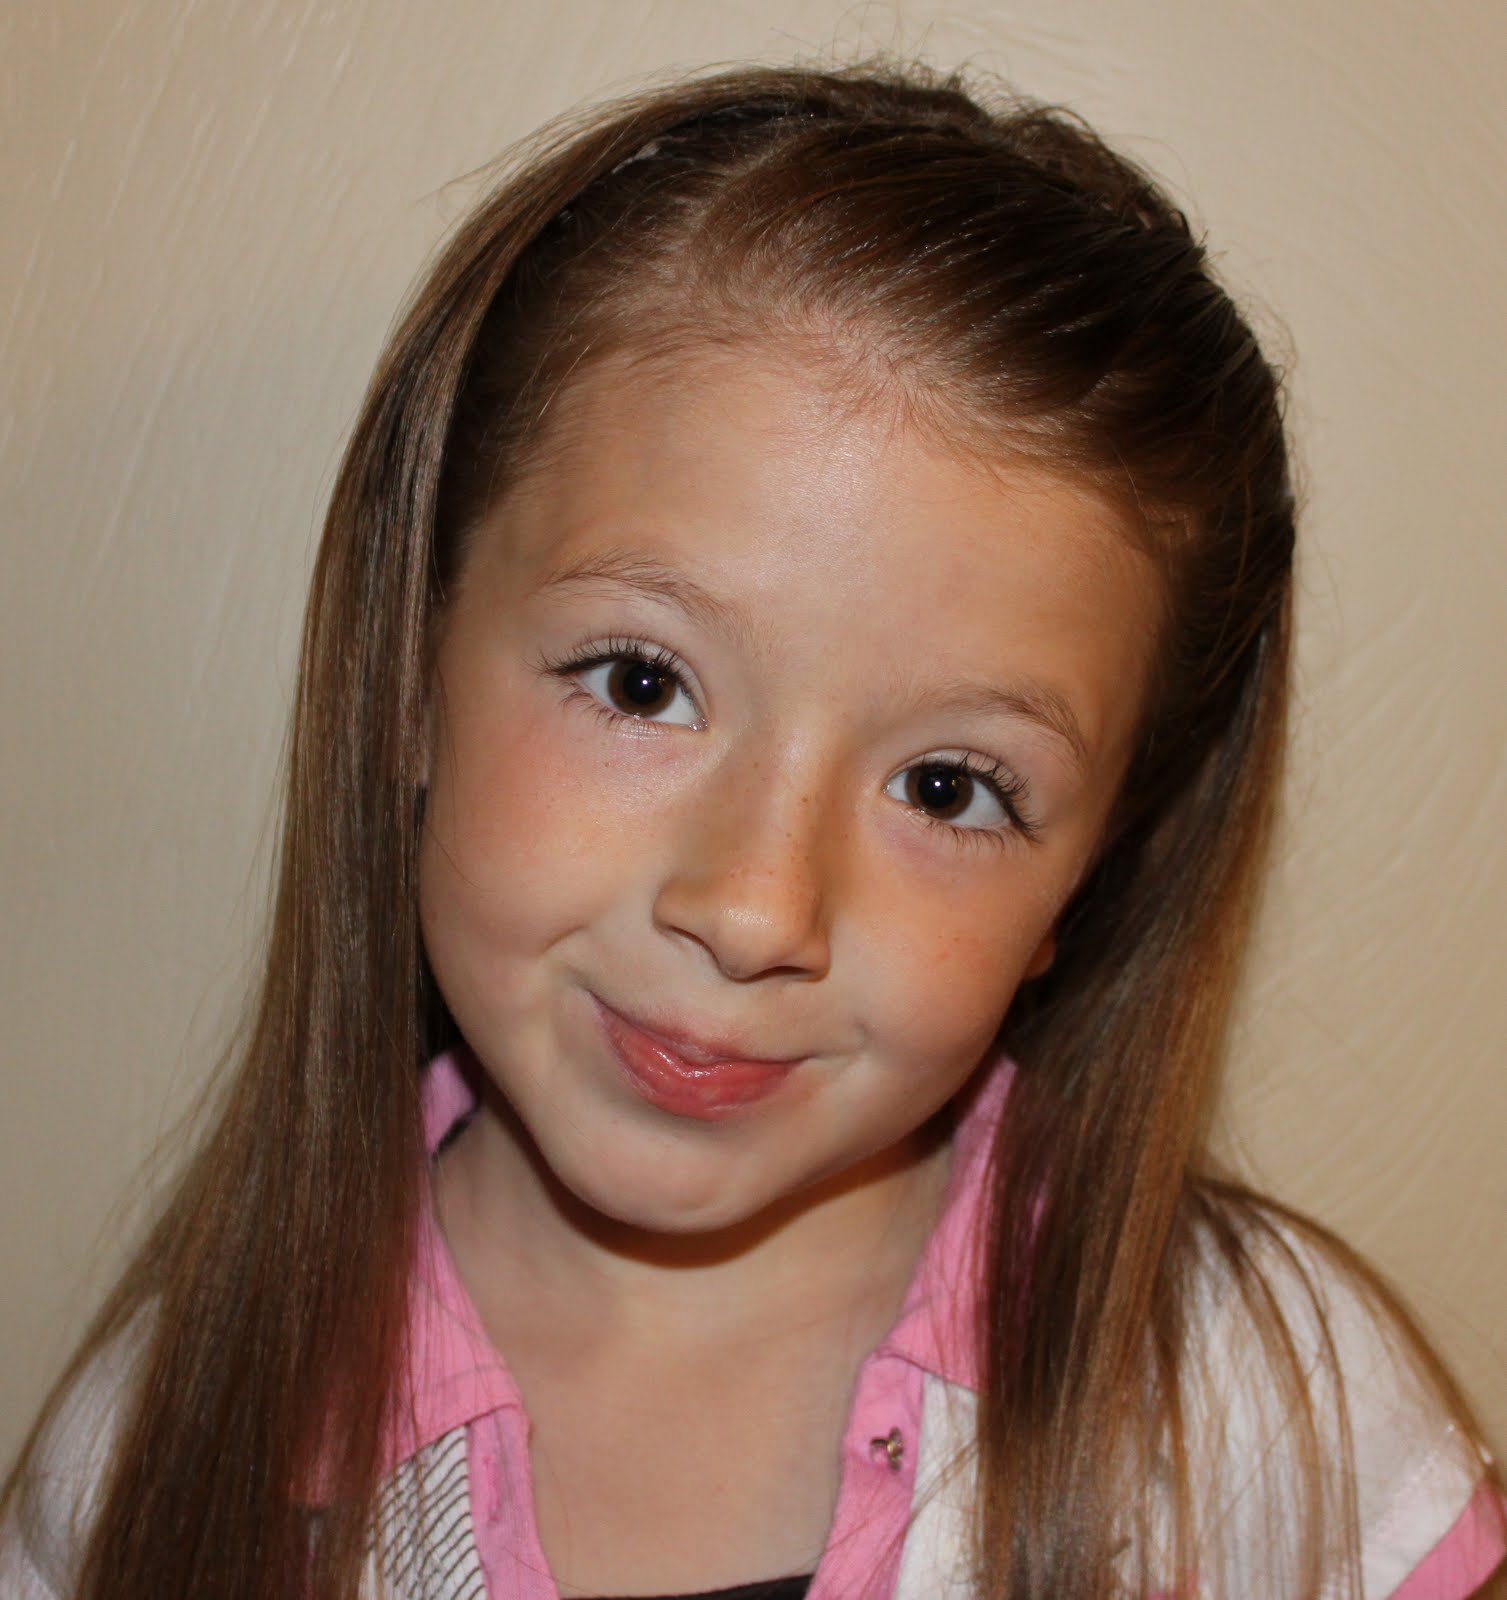 Hairstyles For Girls.. The Wright Hair: Frenchbraid Headband